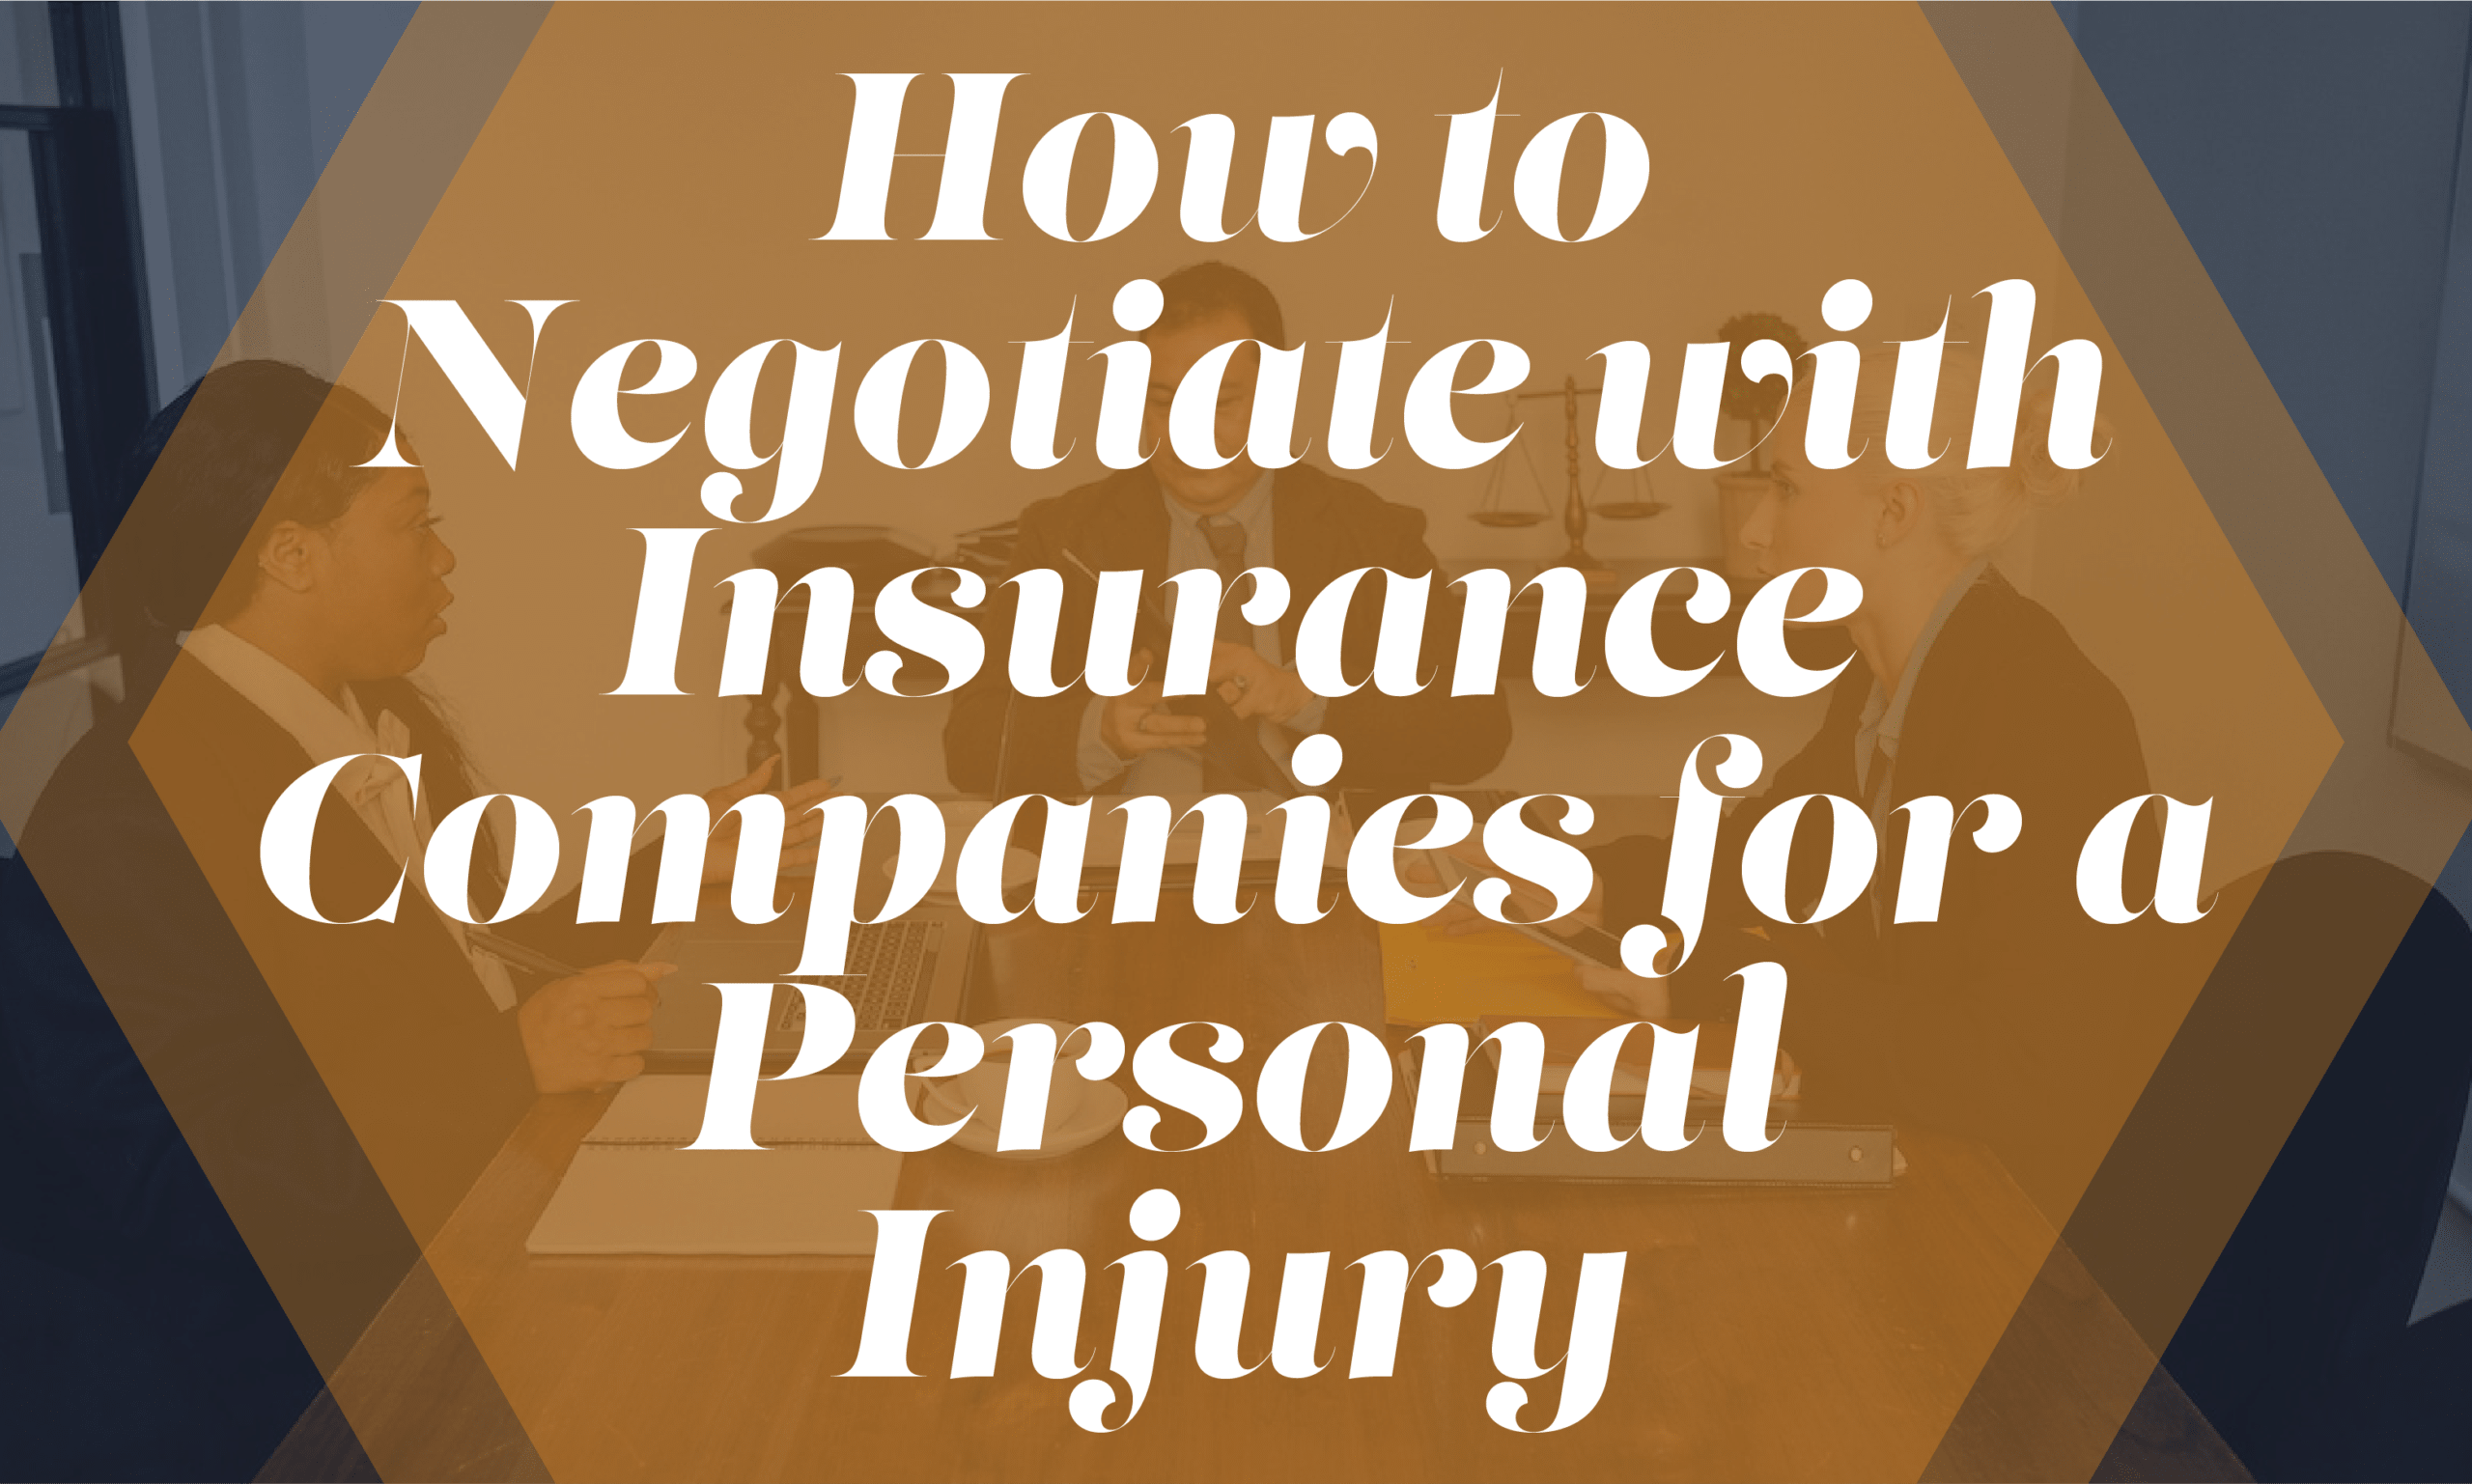 """""""How to Negotiate with Insurance Companies for a Personal Injury"""" overlaid on image of lawyers and insurance agents negotiating"""